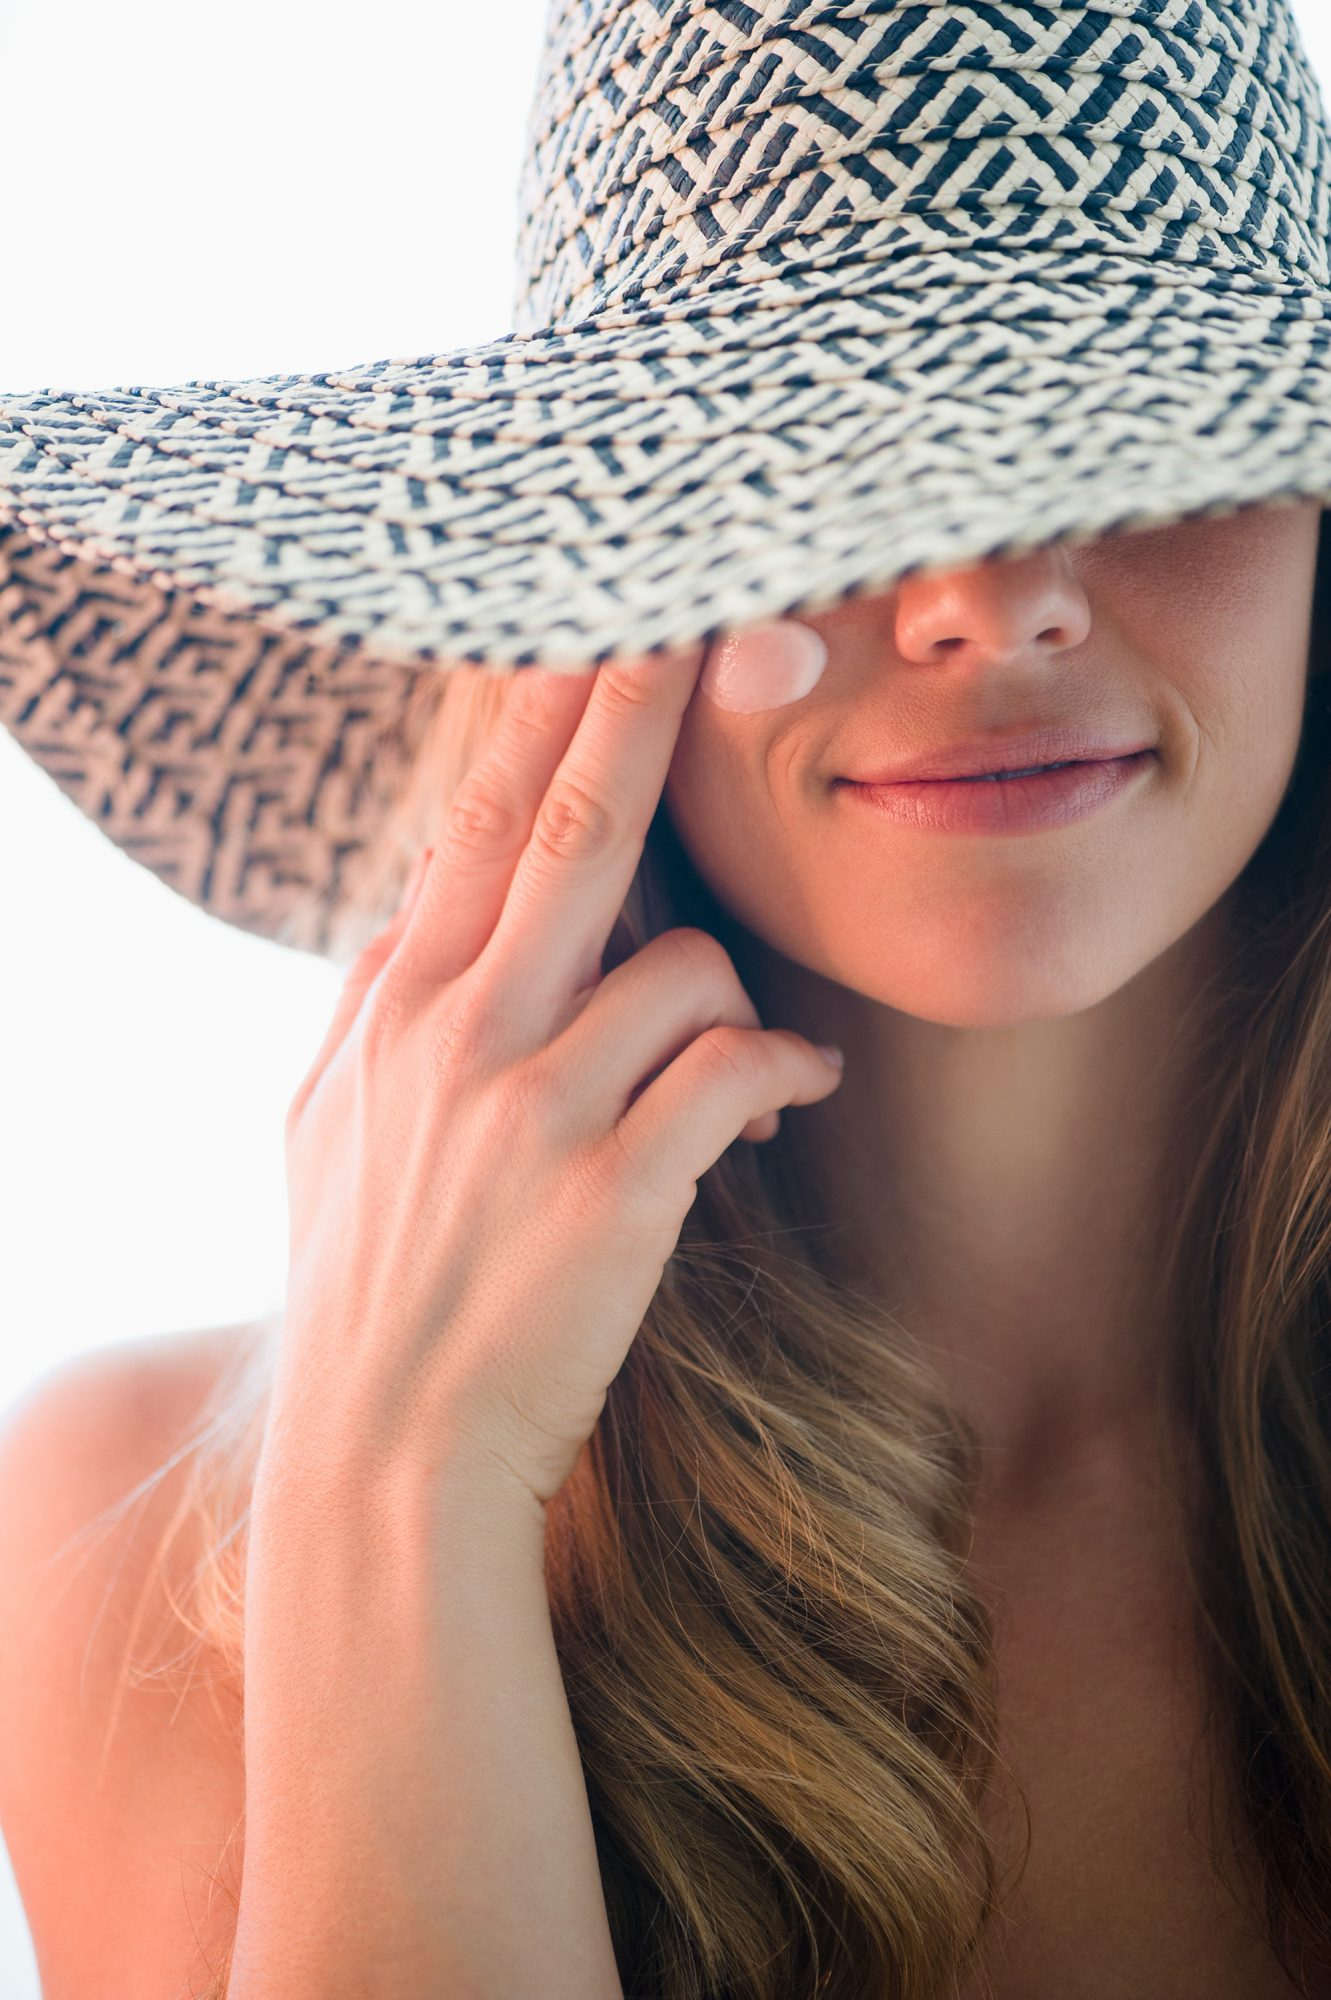 Woman Wearing Sunscreen and Sun Hat